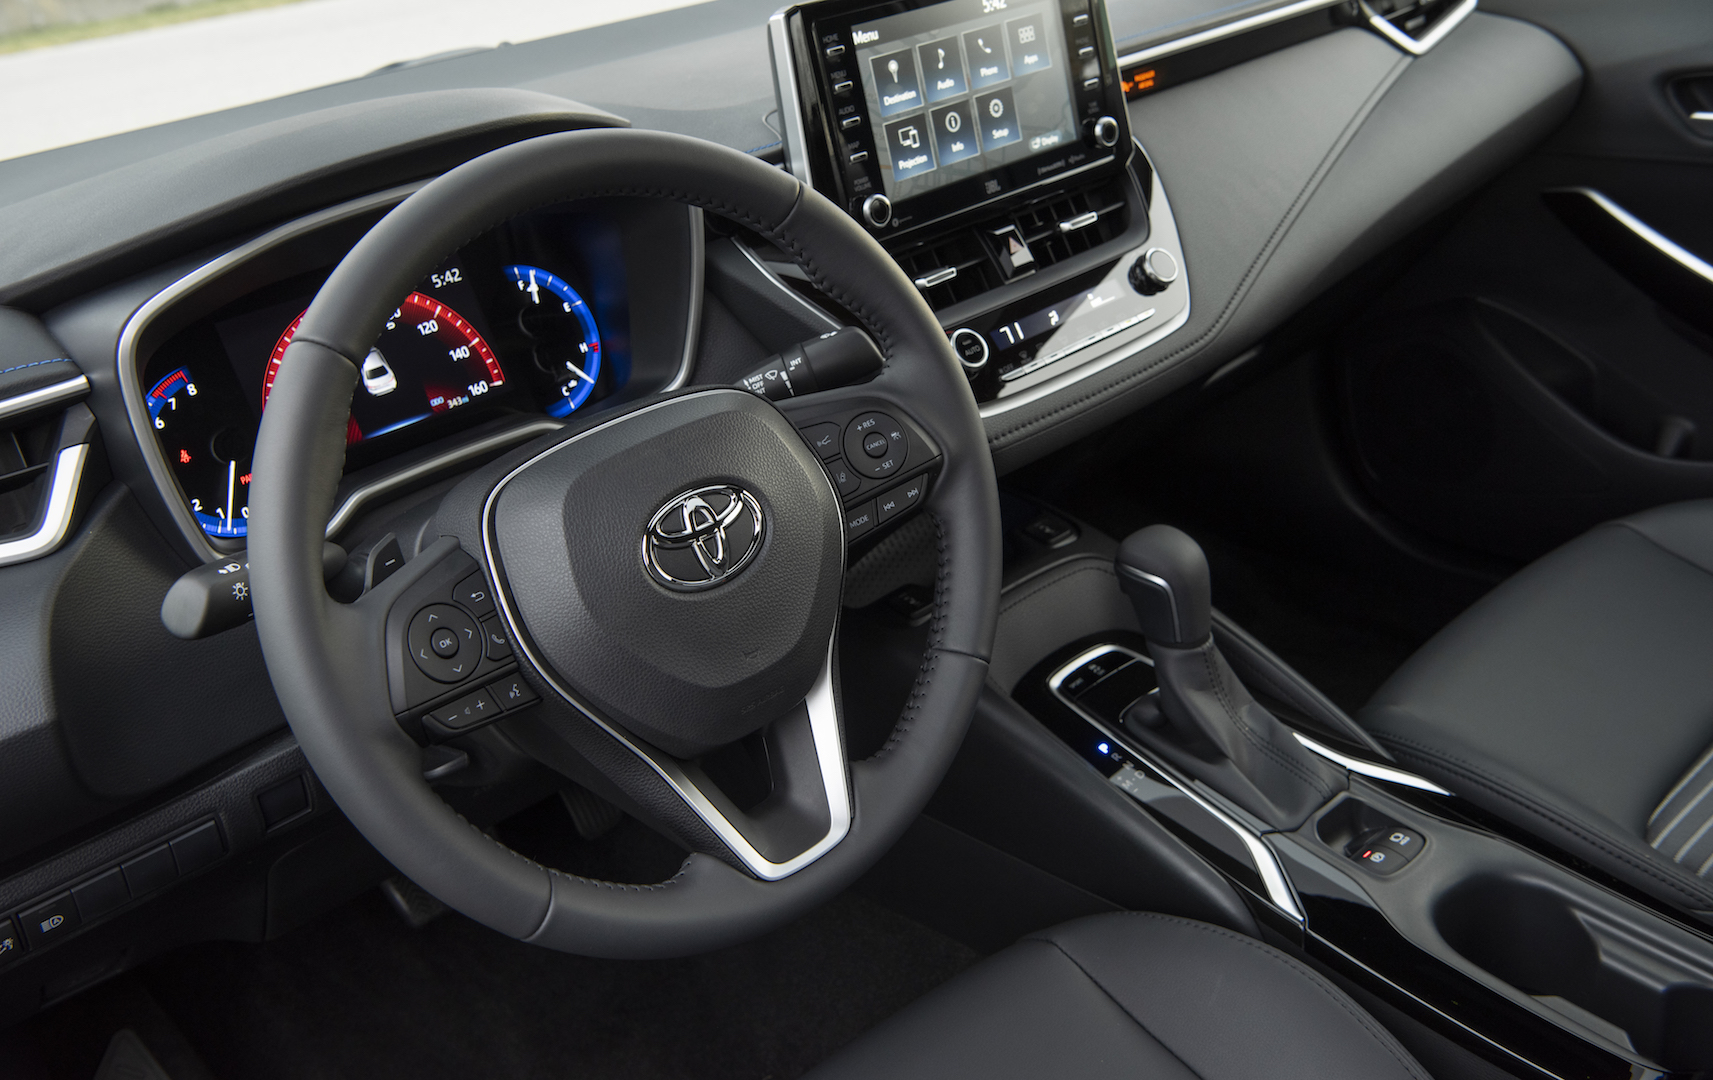 2020_Corolla_XSE_BlackSandPearl_041_v1_current